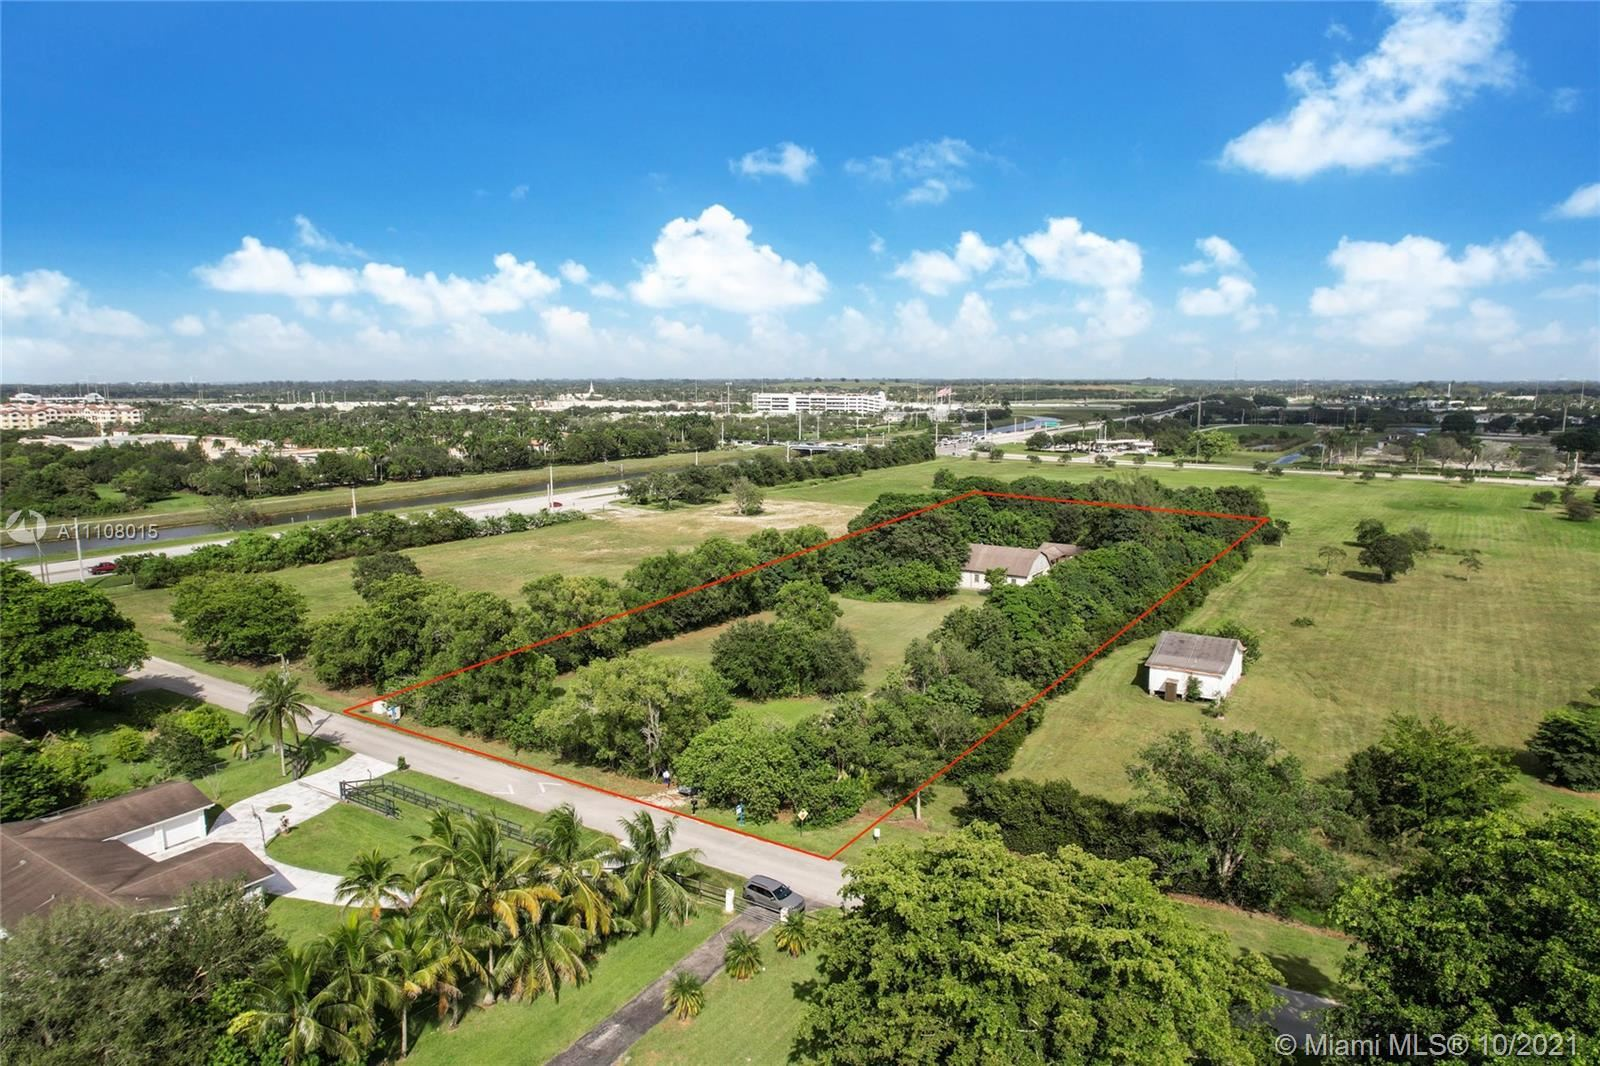 4650 SW 163rd Ave, SouthWest Ranches, FL 33331 - #: A11108015